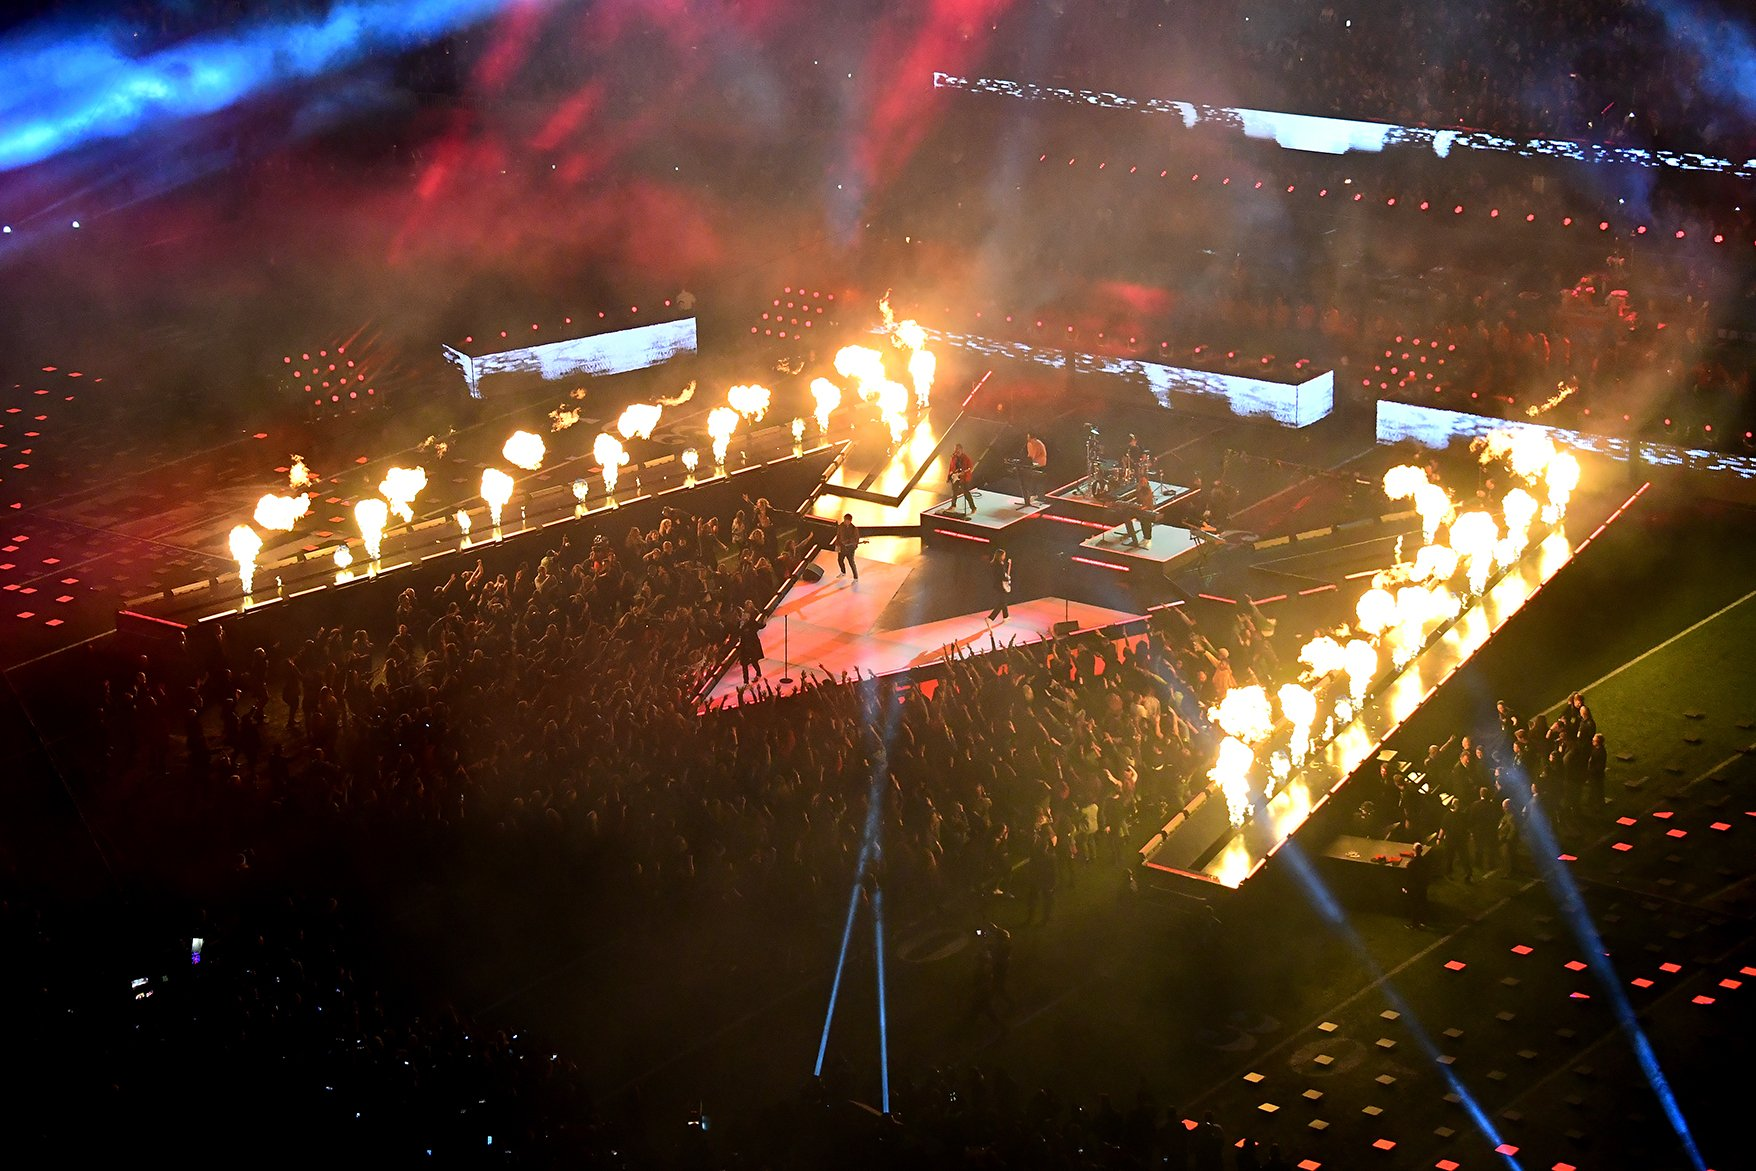 Lighting design and Pyro at Super Bowl LIII Halftime Show